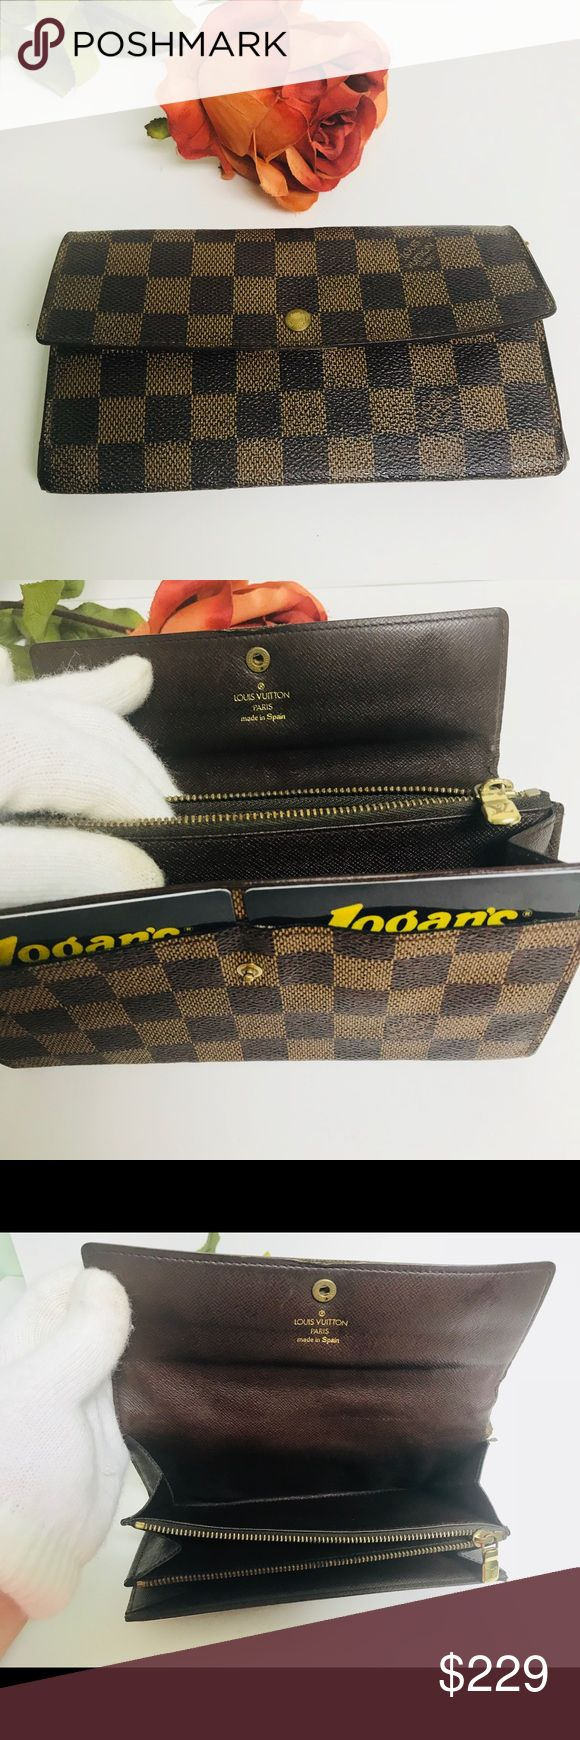 "Louis Vuitton Fortefeiulle Sarah LongBifoldWallet 🌷Date Code :CA 0947 (1997)   🌷$189 free shipping and invoiced 🌷Size: :H 4.1"" W:7.5""xD:1"" 🌷In good condition 🌷good inside 🌷excellent condition for coin pocket 🌷well running zipper 🌷Canvas is good. 🌷did some retouch  🌷few loosened stitches  🌷There is peel on 2 front card pocket 🌷Over all still  functional & ready to used for everyday  🌷Cash or layaway accepted 🌷PayPal or any Credit card payment  Note: 2 credit card outside…"